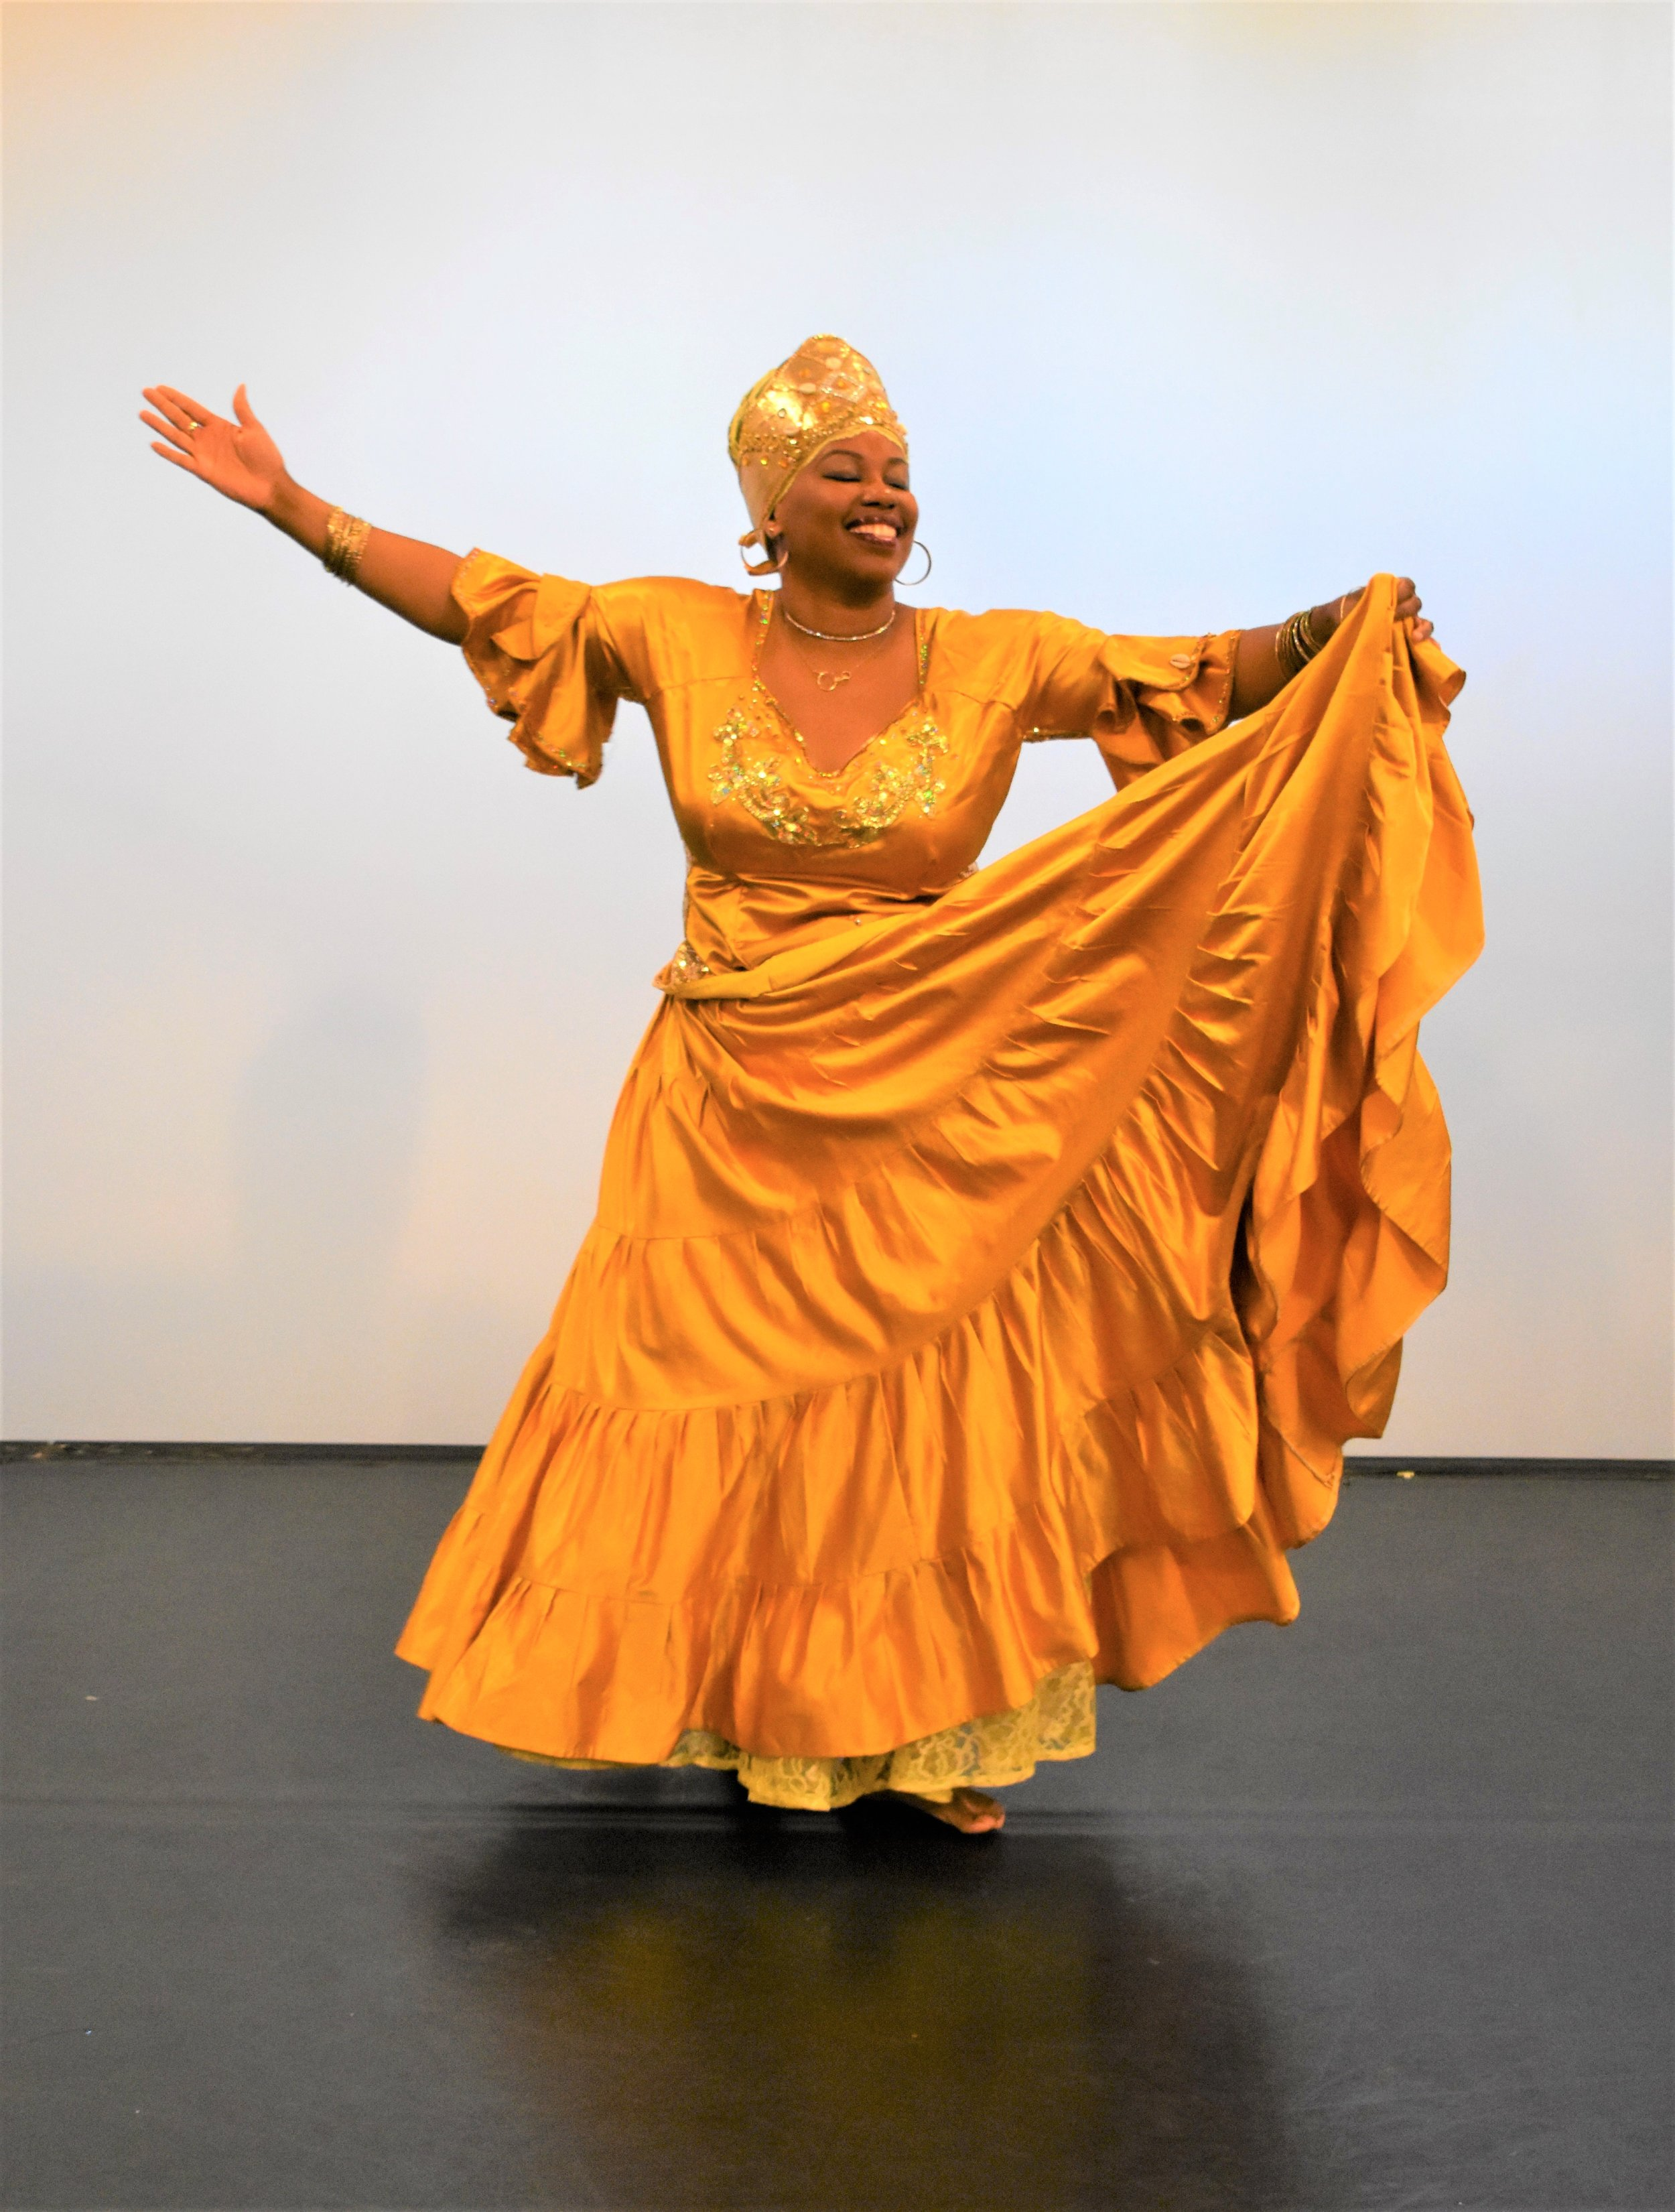 Crystal Gatling as Oshun, the goddess of sweetness and love, who succeeds in returning Ogun to his people after a long absence by tempting him with dance and honey. -